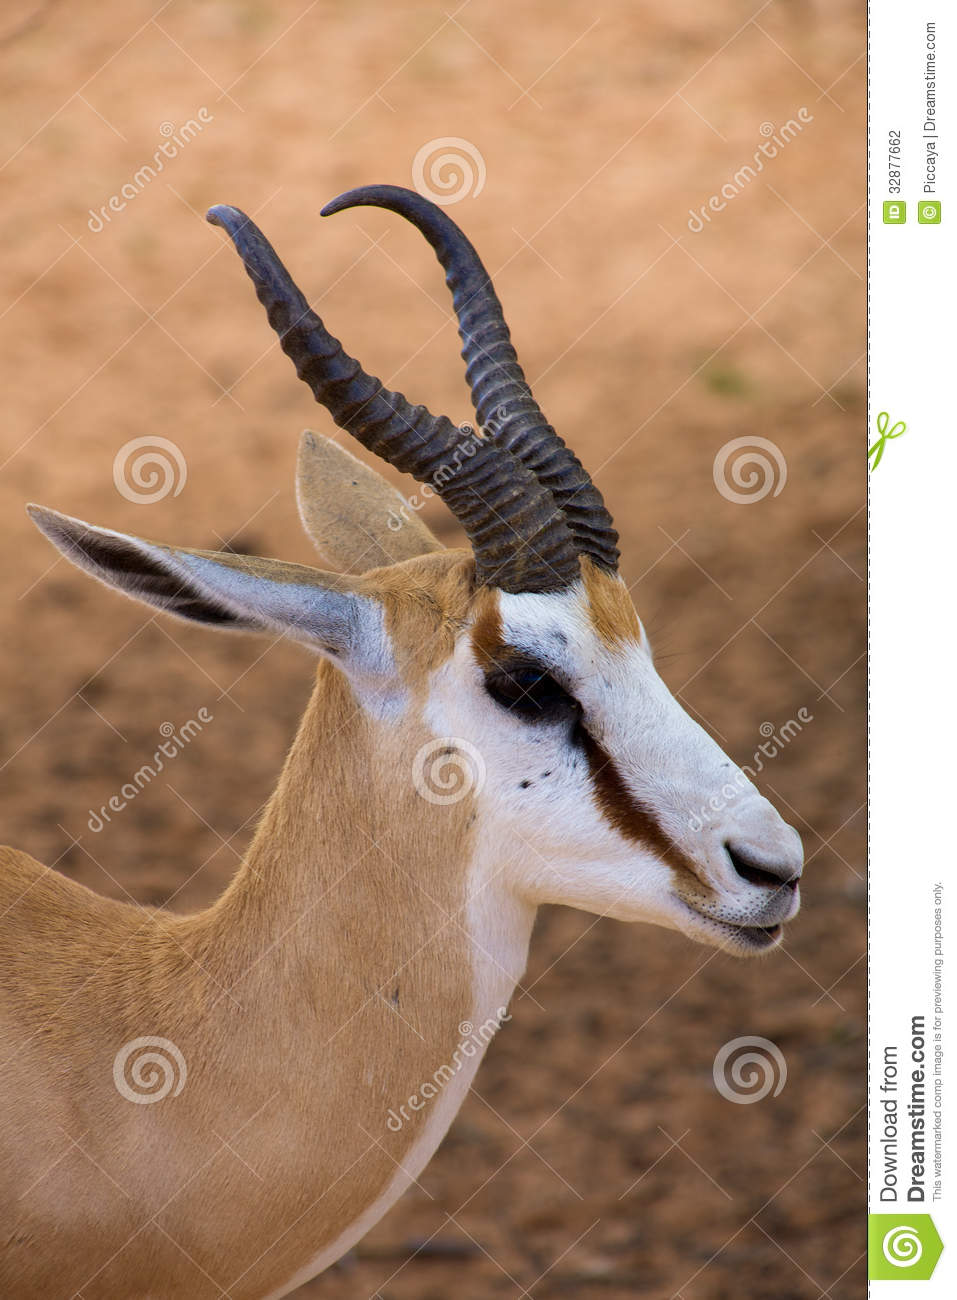 clipart springbok - photo #20